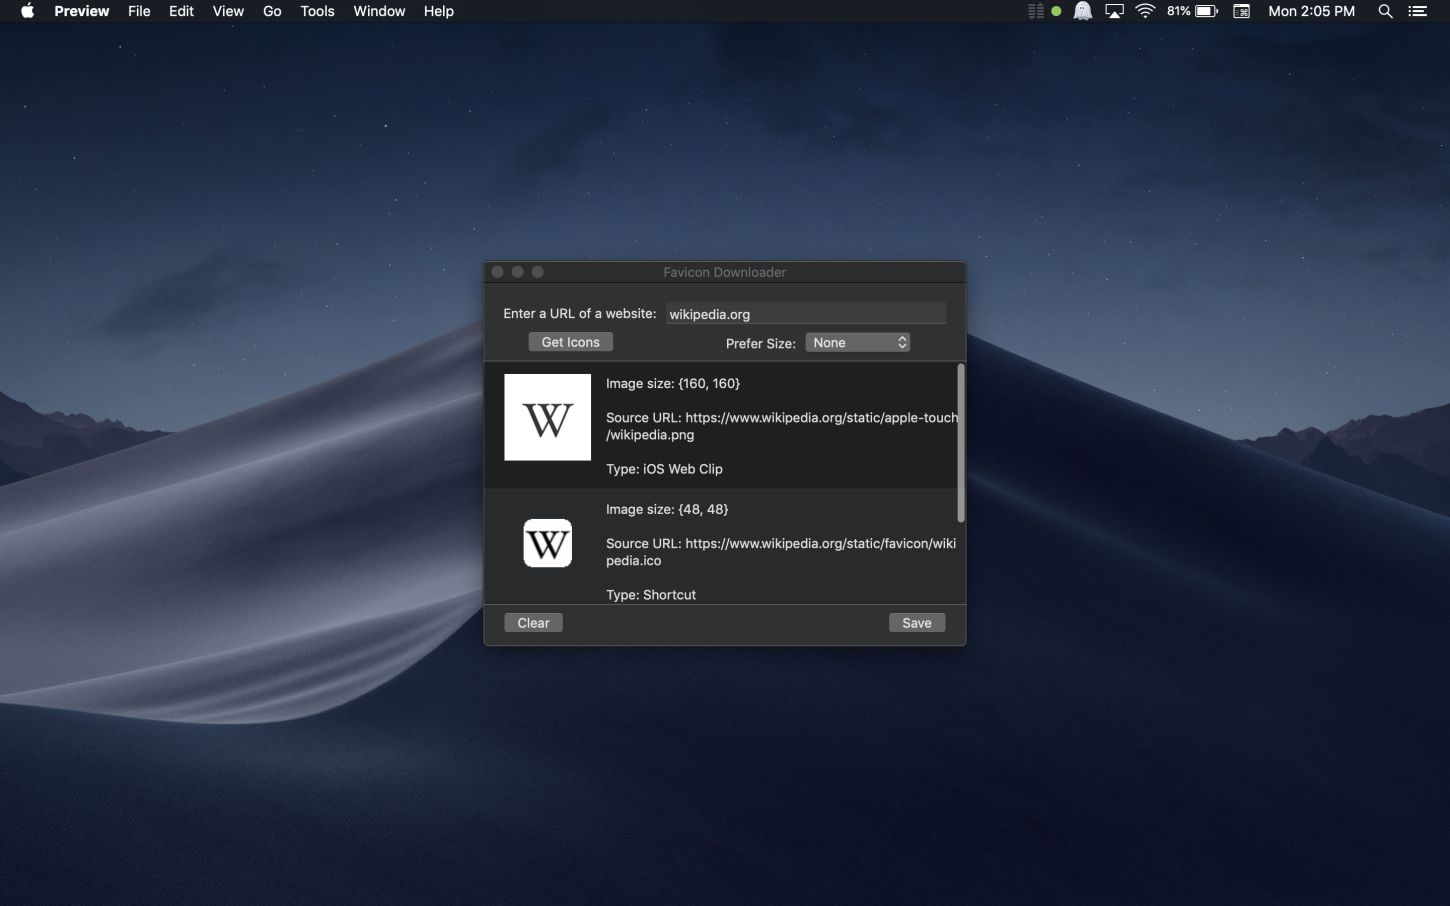 Favicon Downloader Mac app screenshot in dark mode showing Wikipedia icons.